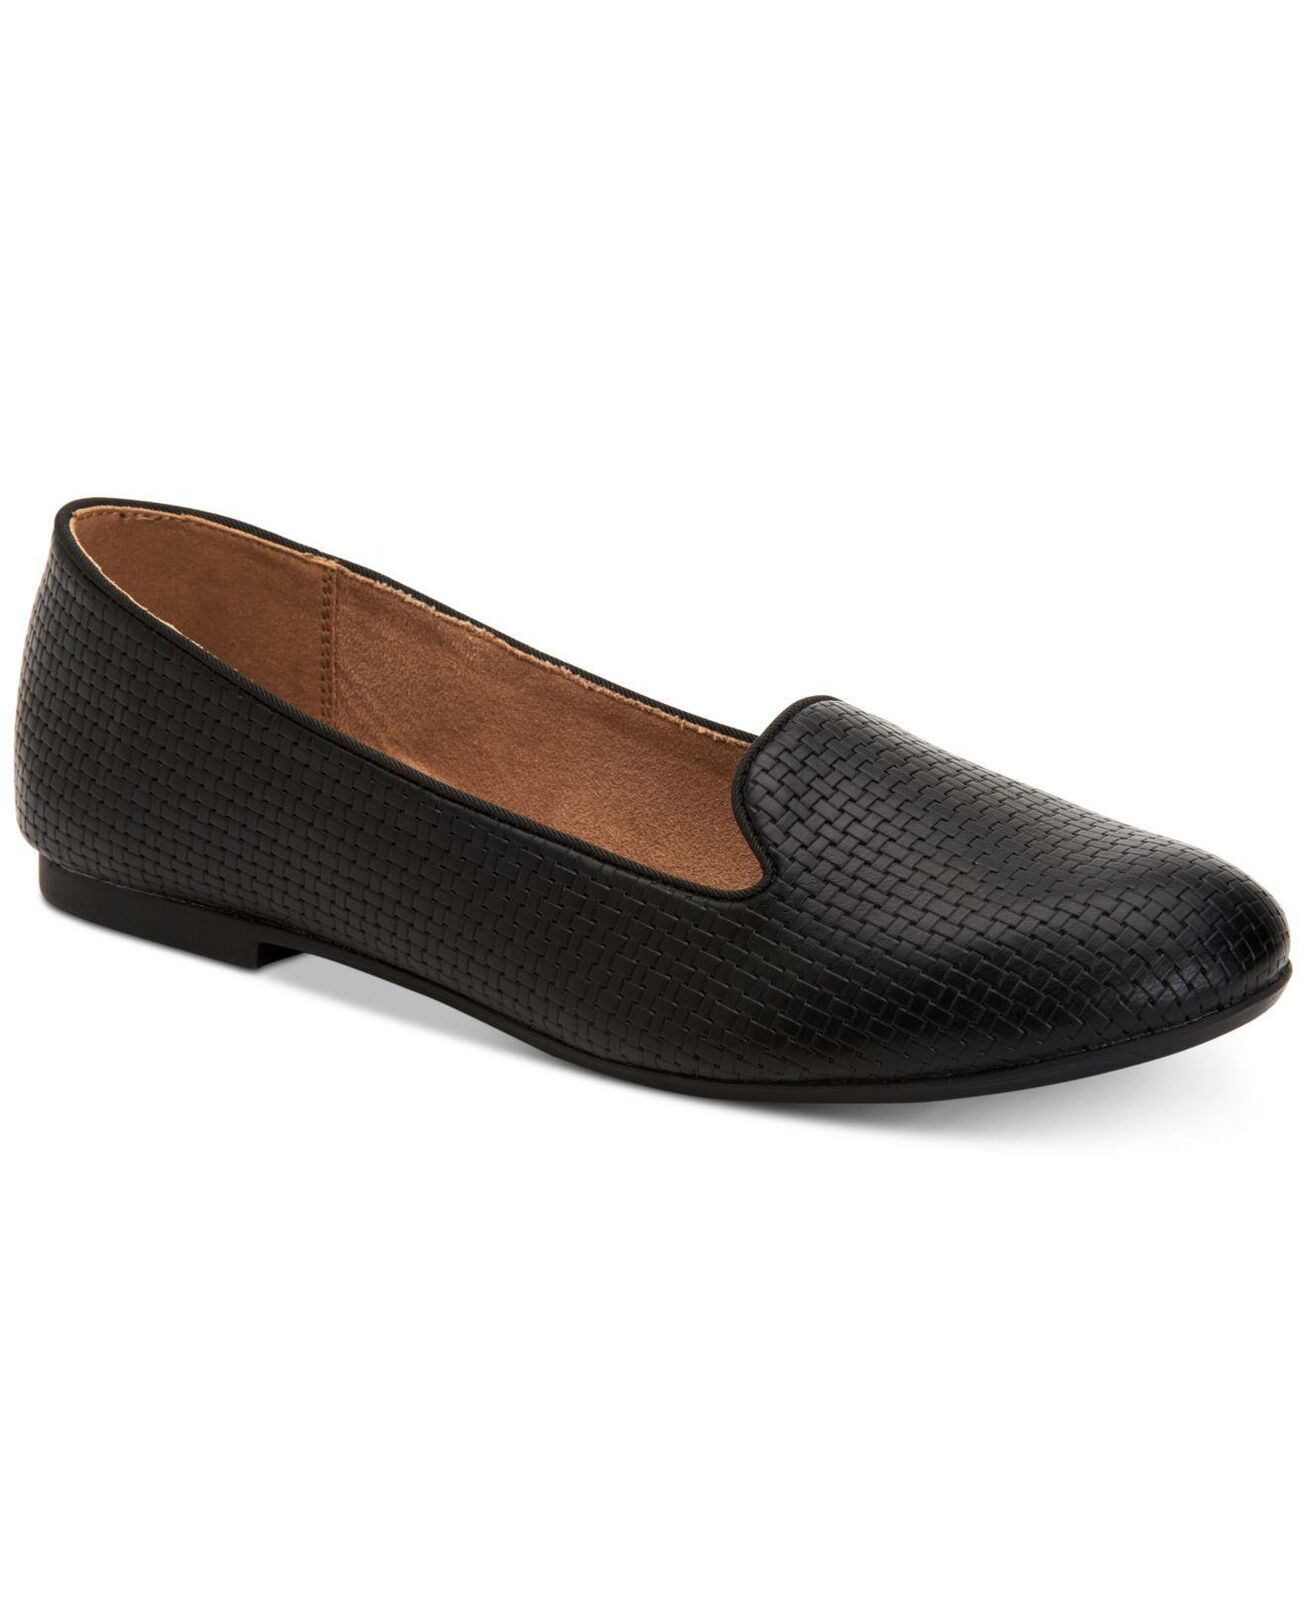 Style & Co. Womens Alysonn2 Round Toe Loafers, Black Pu, Size 10.0 8QmT US